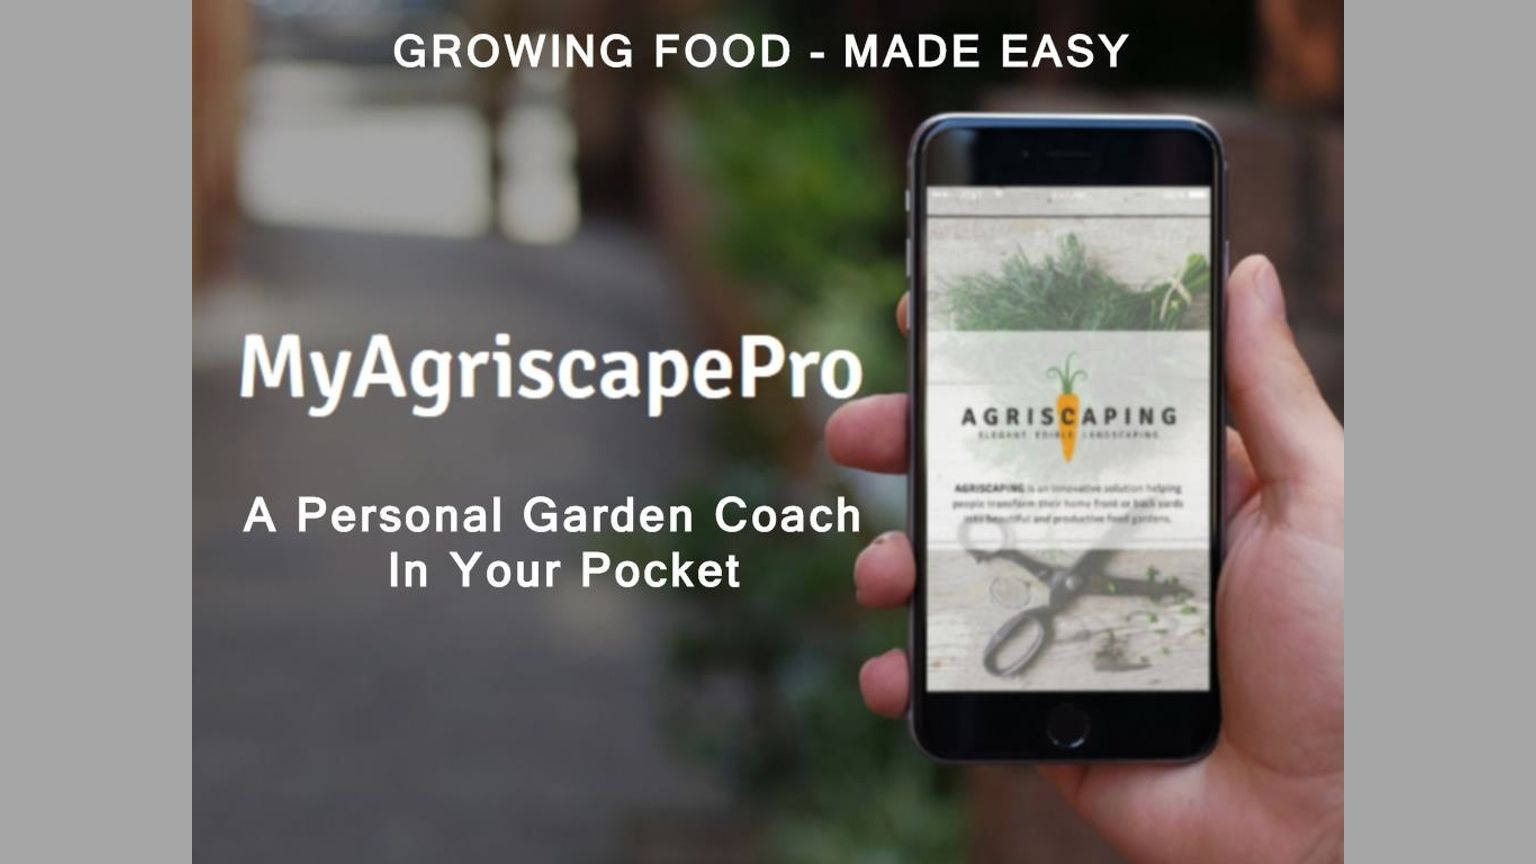 myagriscapepro makes growing food easy an innovative micro